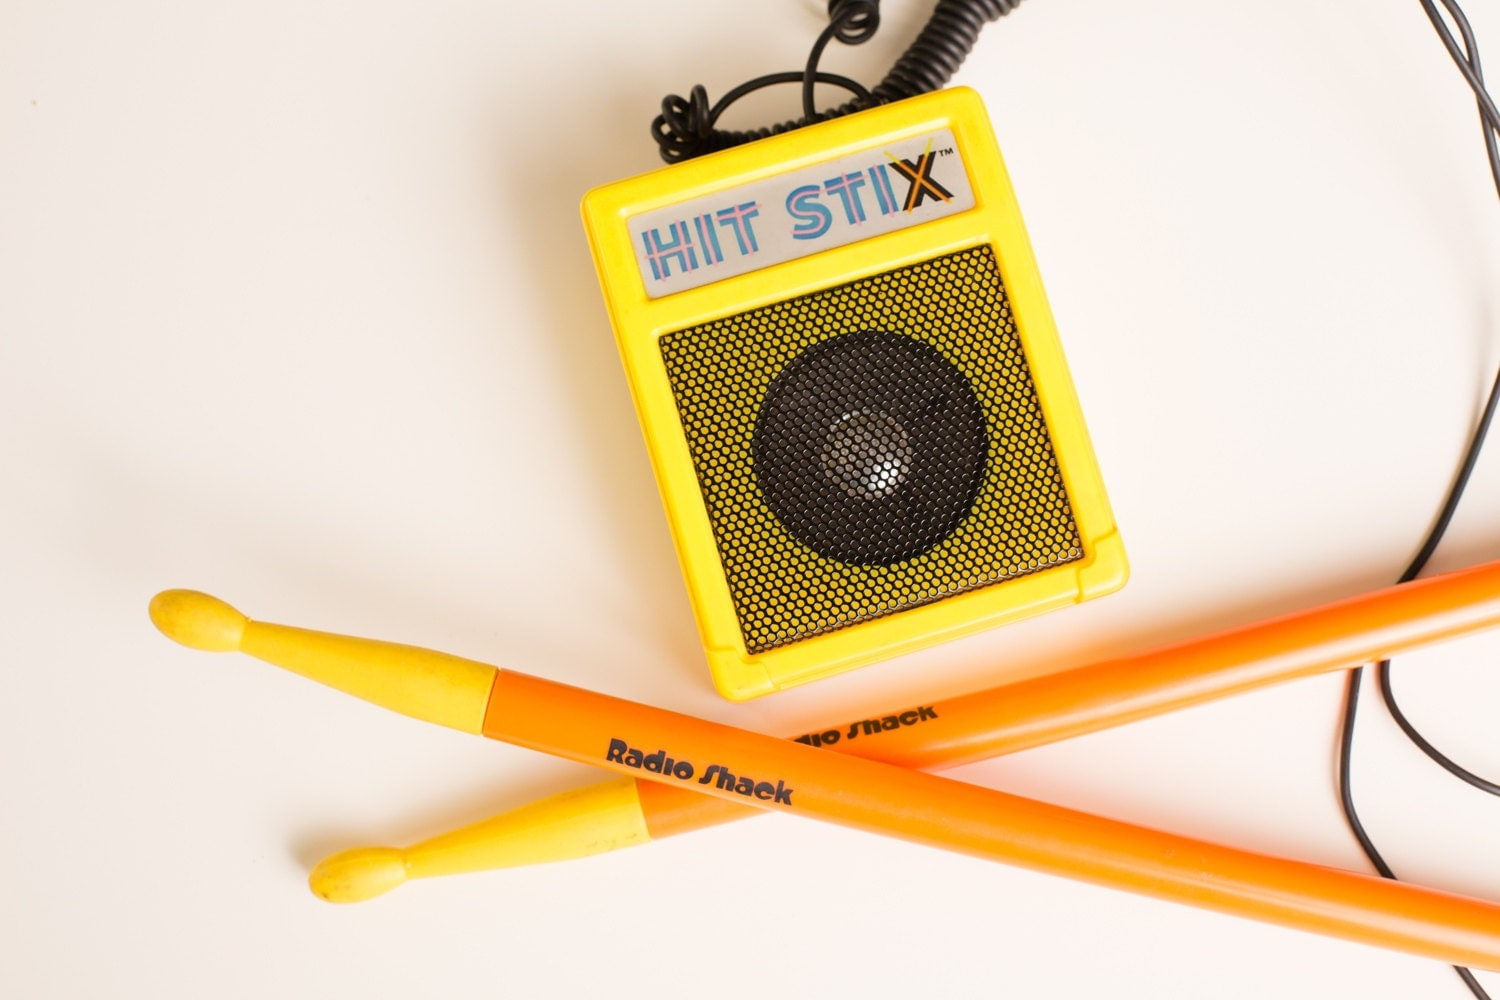 80s Electronic Toys : Vintage s hit stix electronic drum sticks toy radio shack